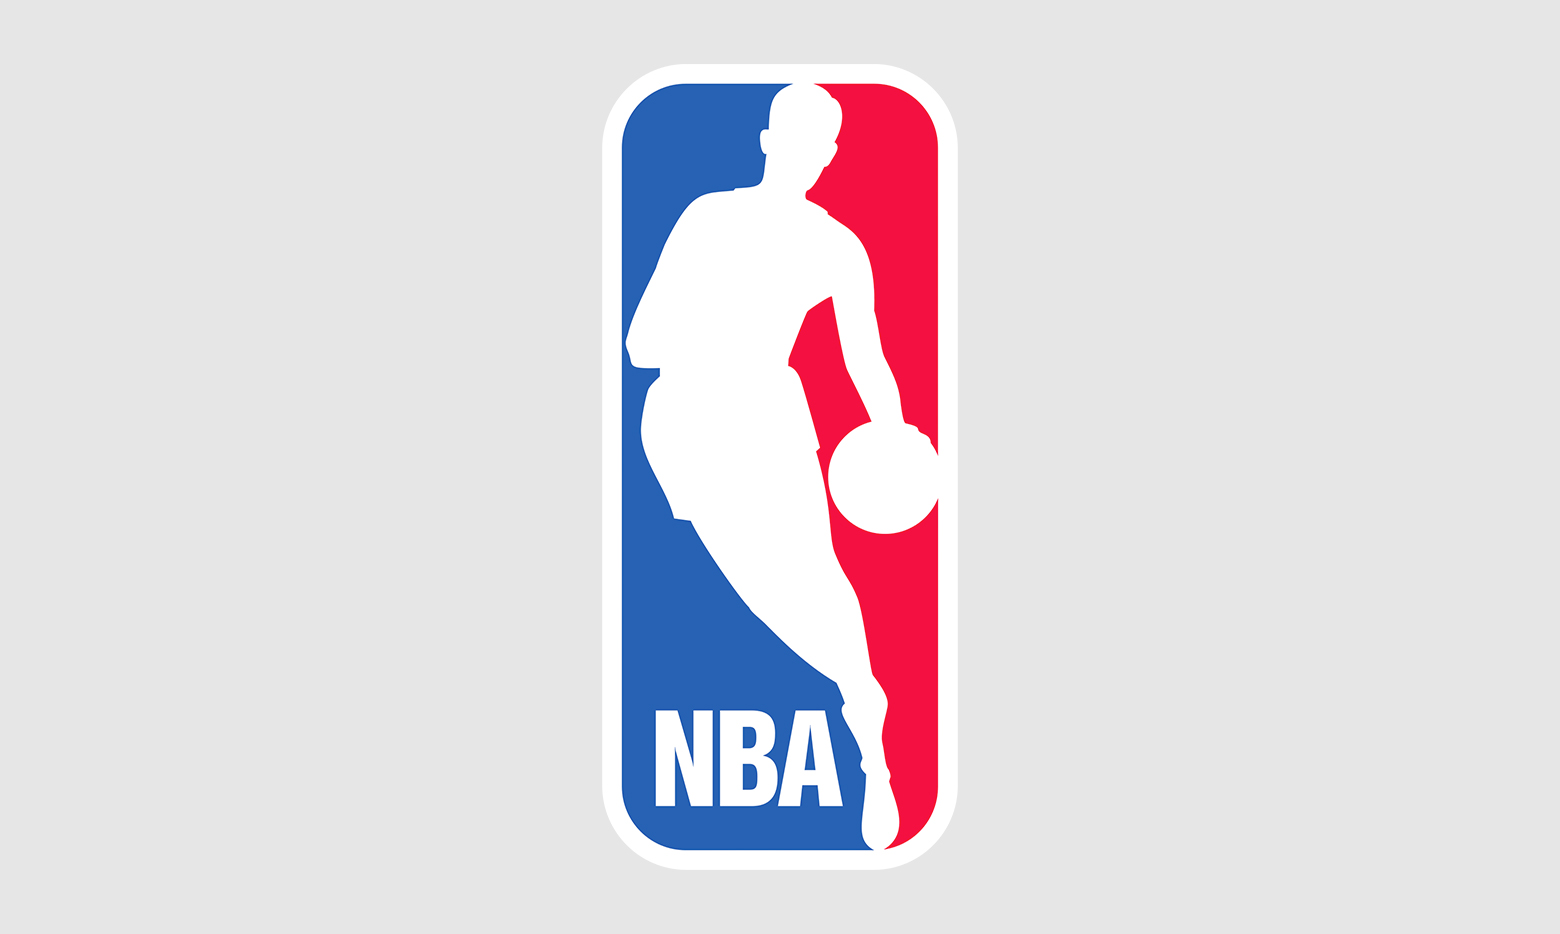 Das Logo der National Basketball Association